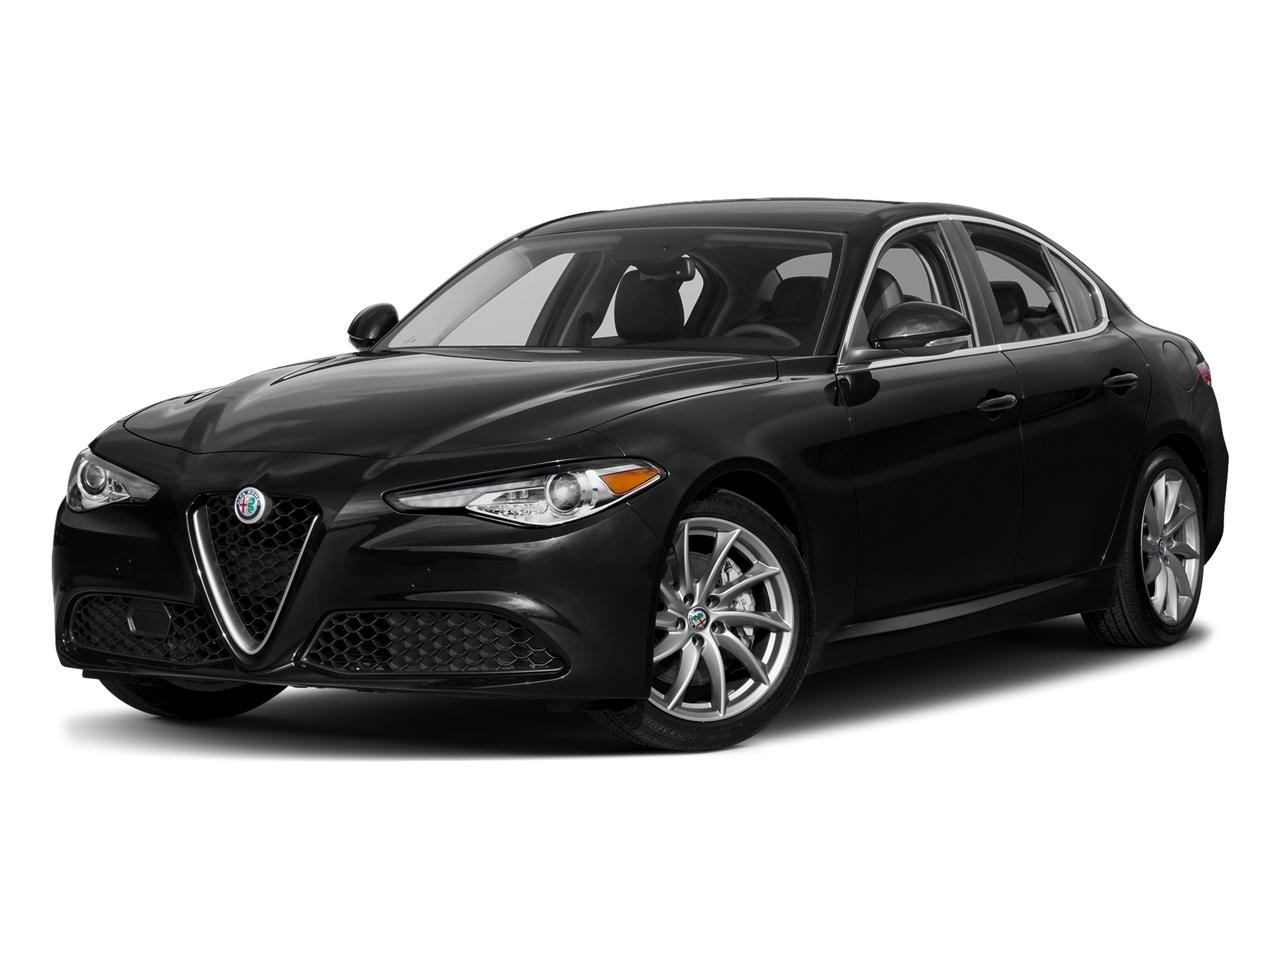 2017 Alfa Romeo Giulia Vehicle Photo in Portland, OR 97225